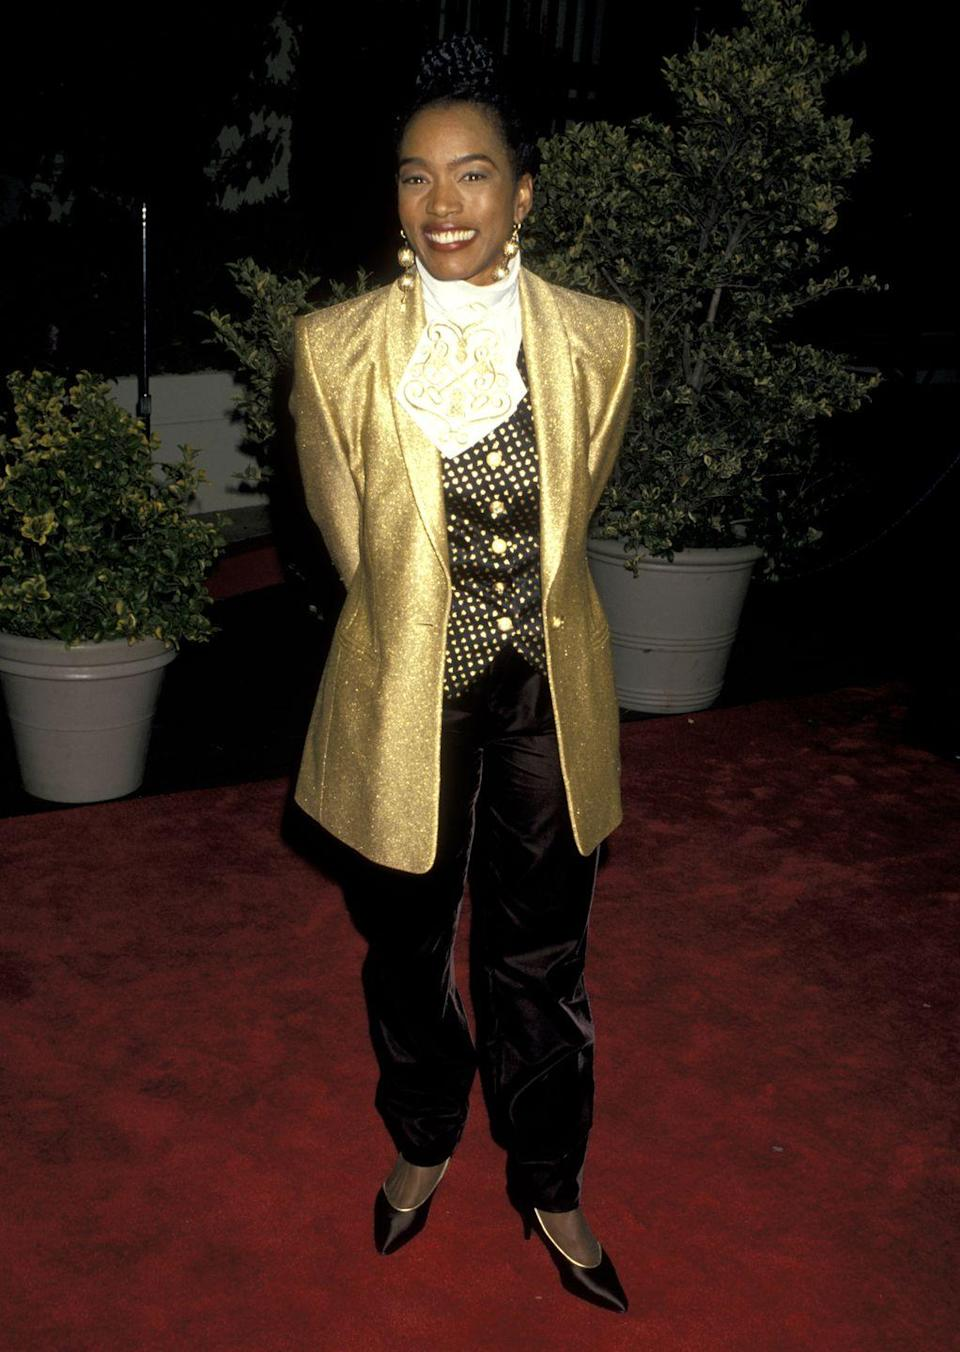 <p>Angela straight-up glowed at the People's Choice Awards in a bright gold jacket. She really committed to the three-piece suit with a polka-dot vest, ruffled dress shirt, and pants. </p>